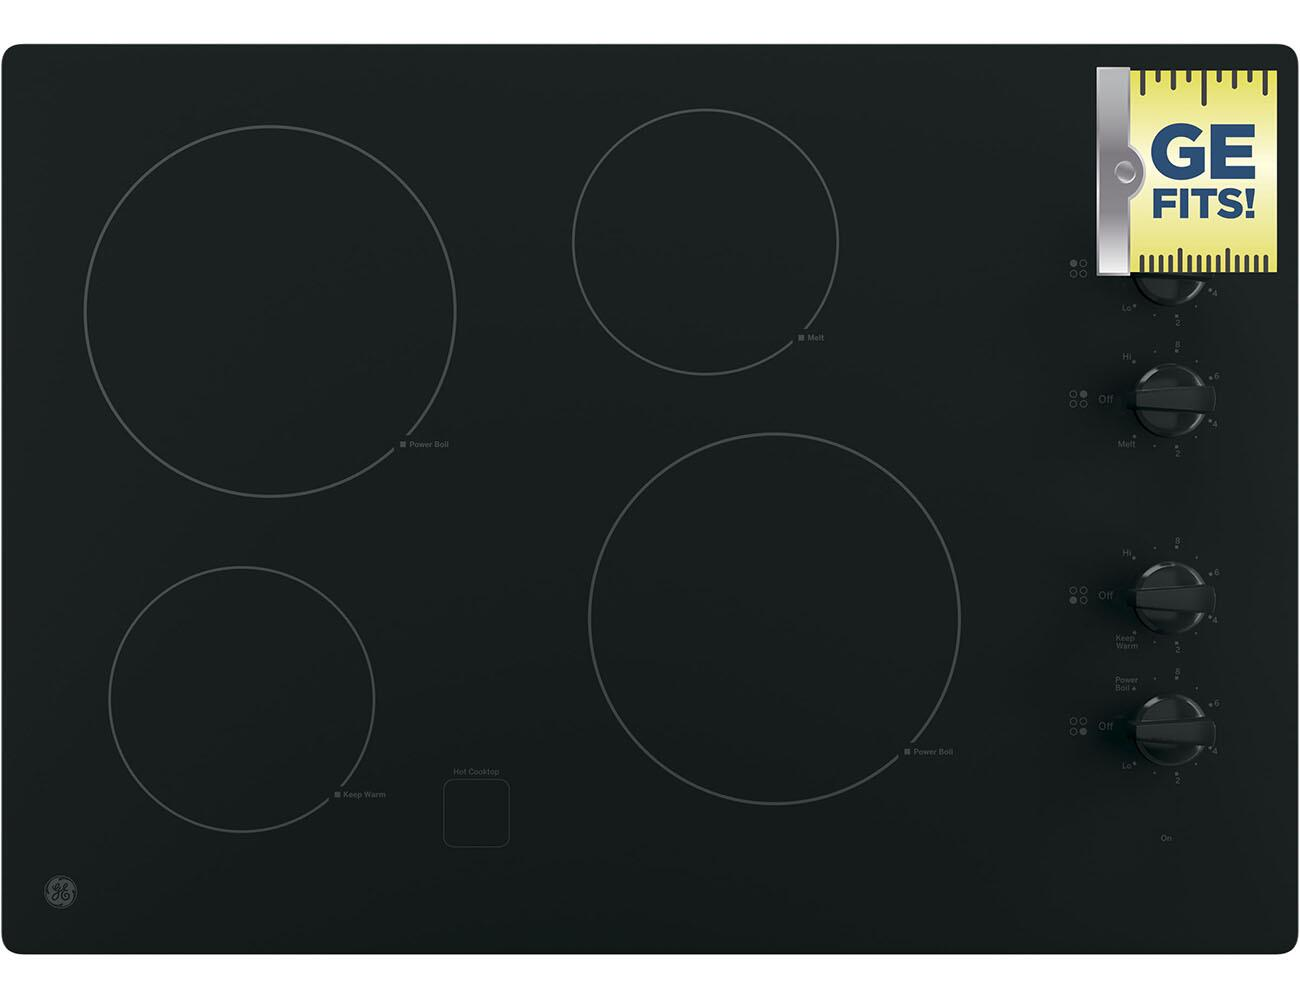 Ge jp3030djbb 30 inch 4 element electric cooktop in black ge ge fits fandeluxe Choice Image